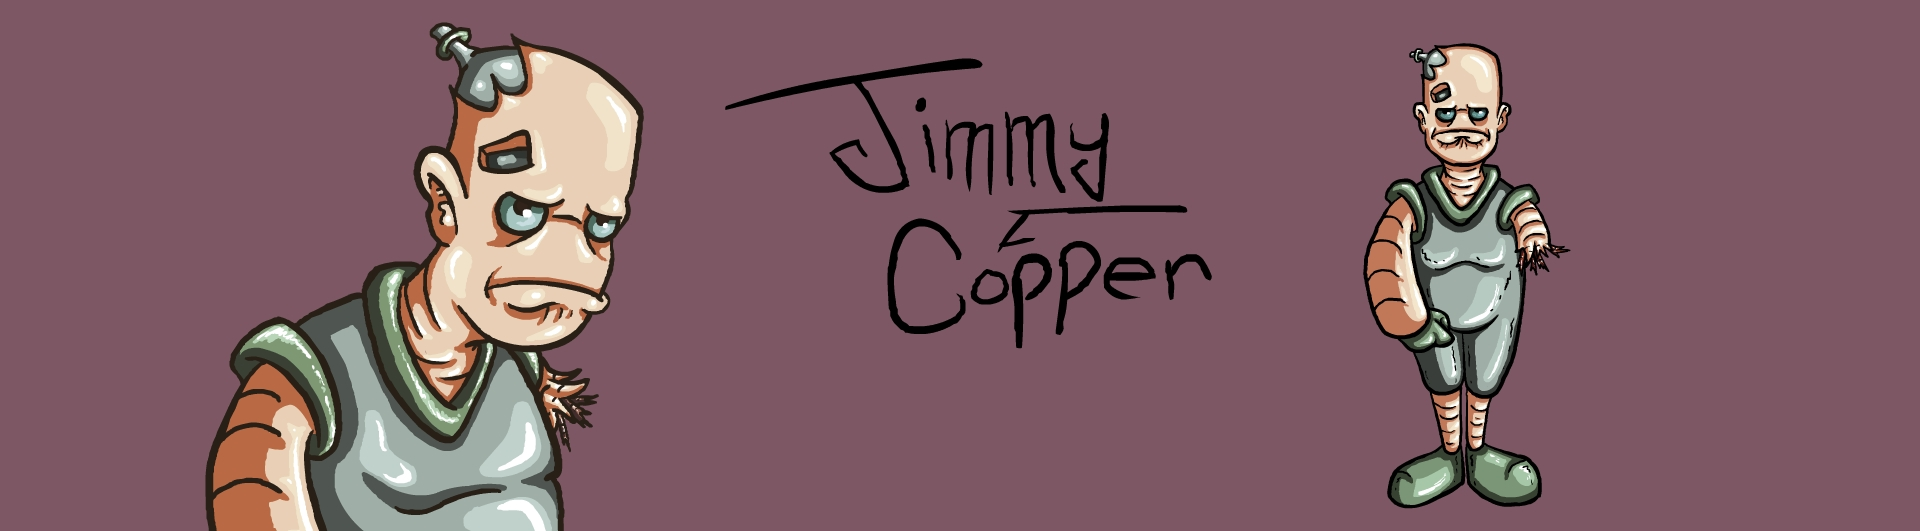 Jimmy Copper